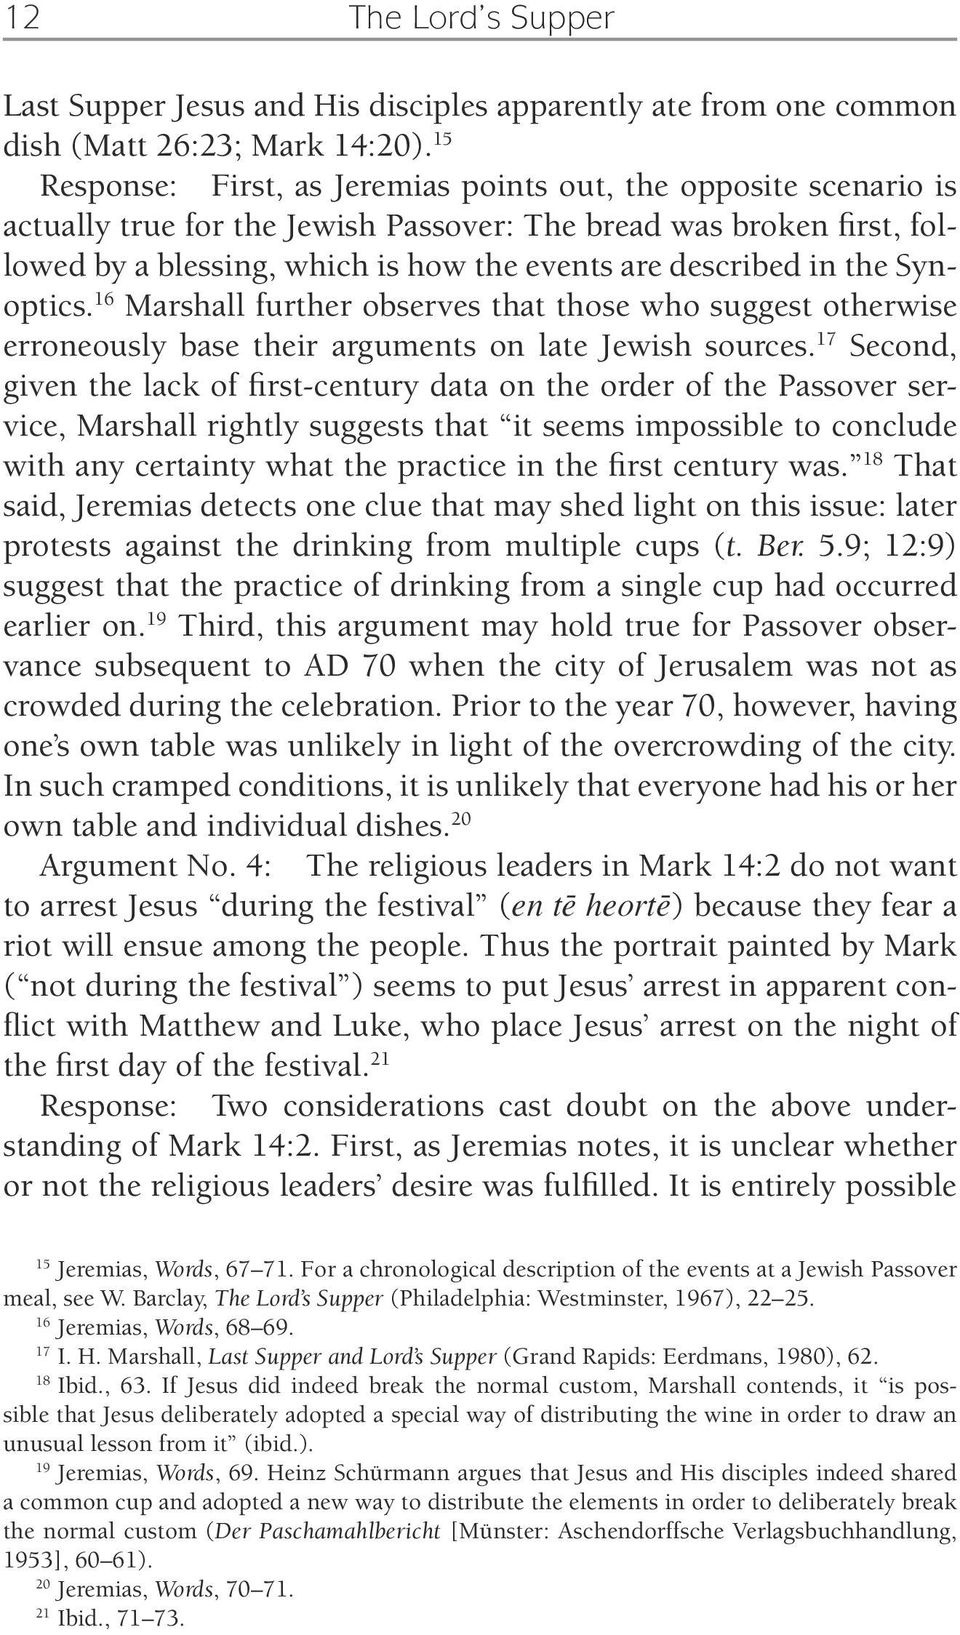 in the Synoptics. 16 Marshall further observes that those who suggest otherwise erroneously base their arguments on late Jewish sources.